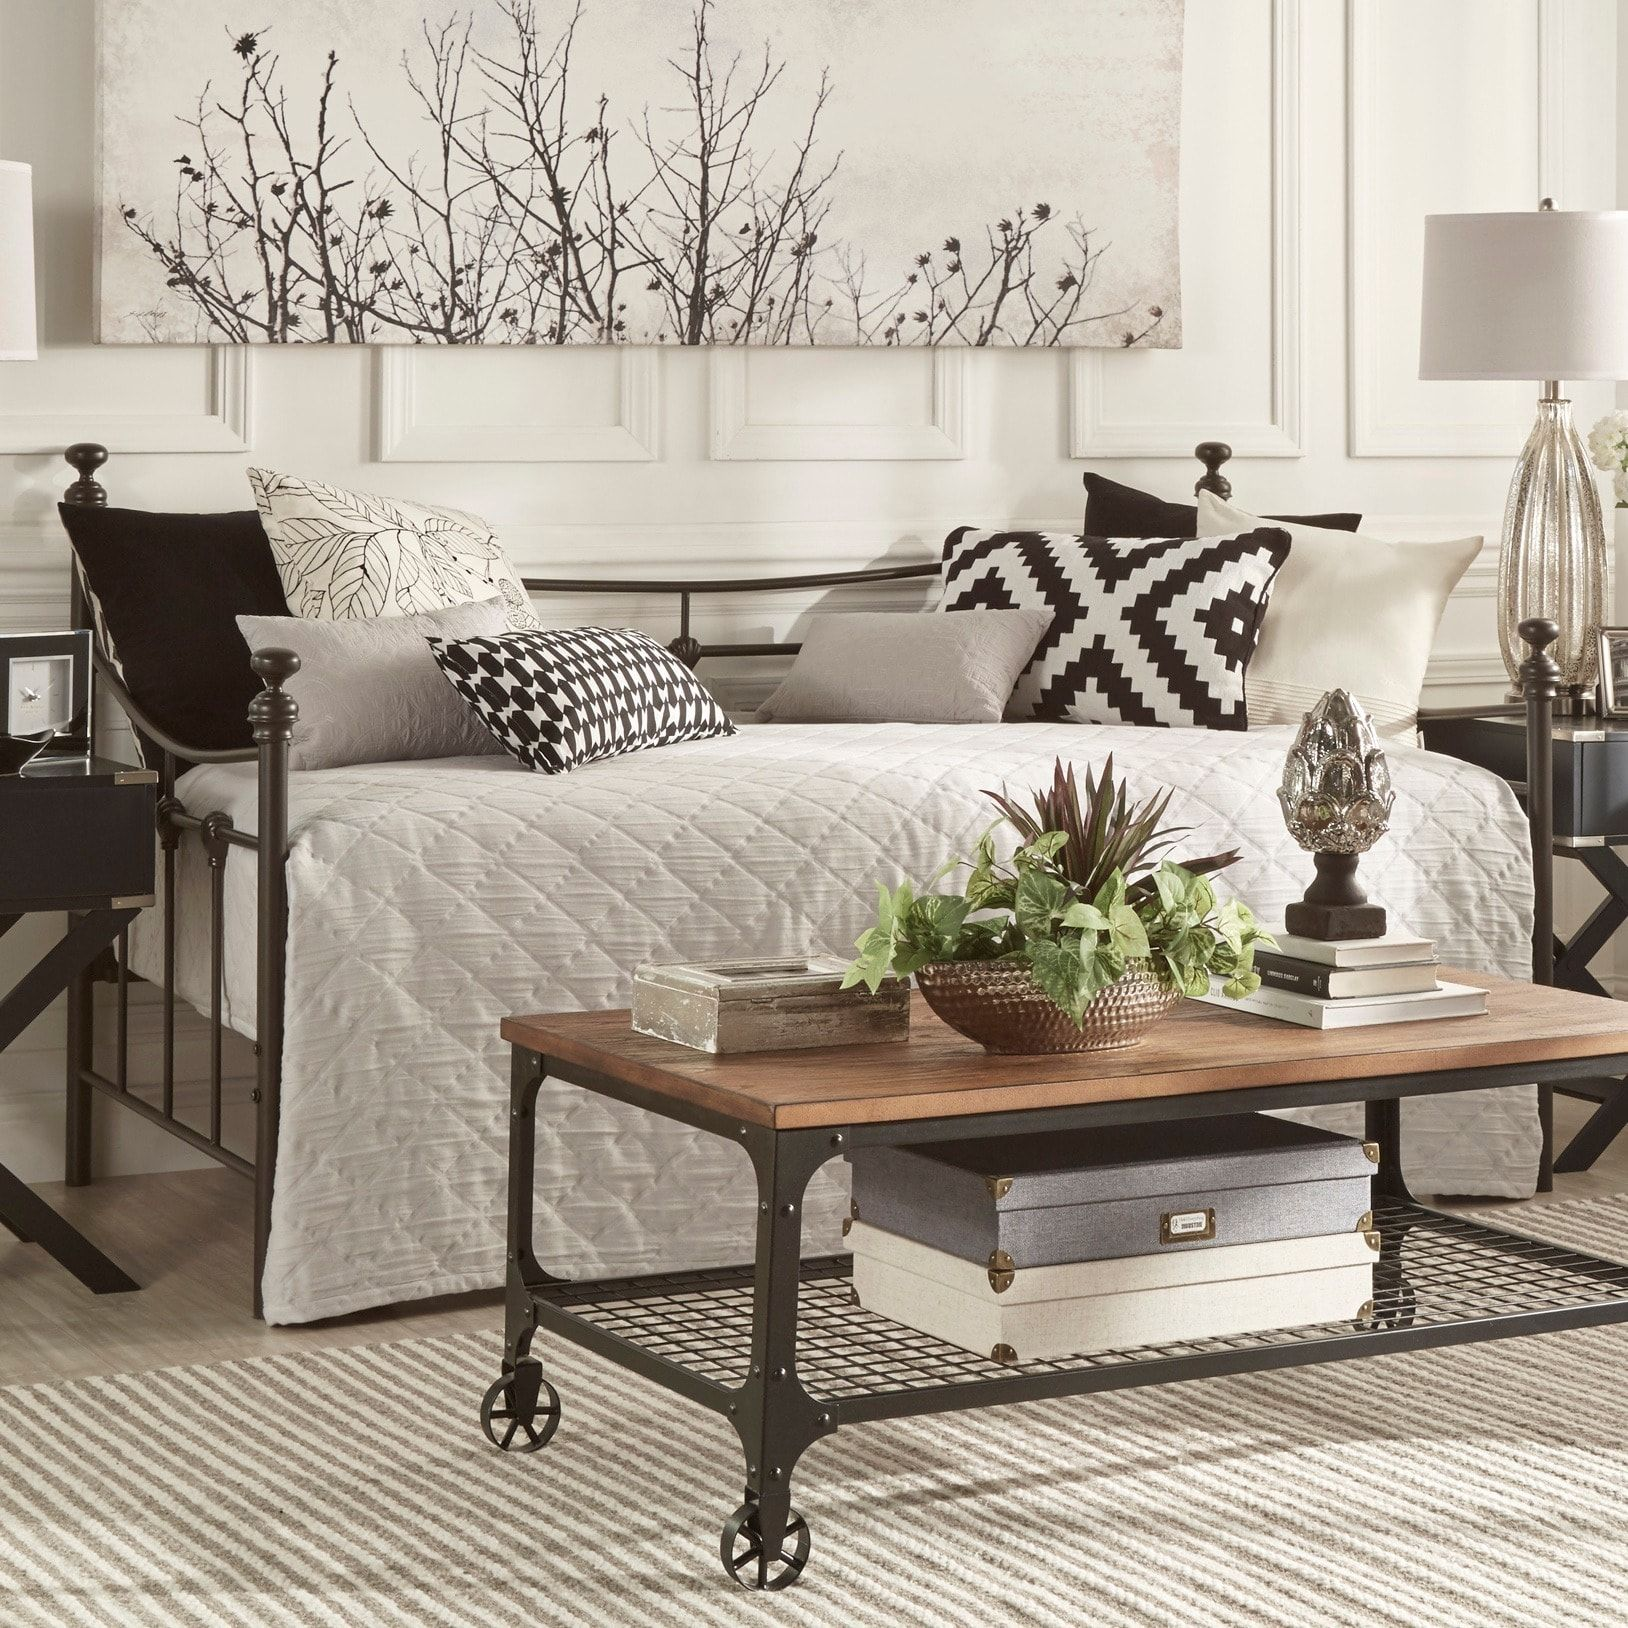 Xander Dark Brown Steel Metal Daybed by iNSPIRE Q Classic | Overstock.com  Shopping -